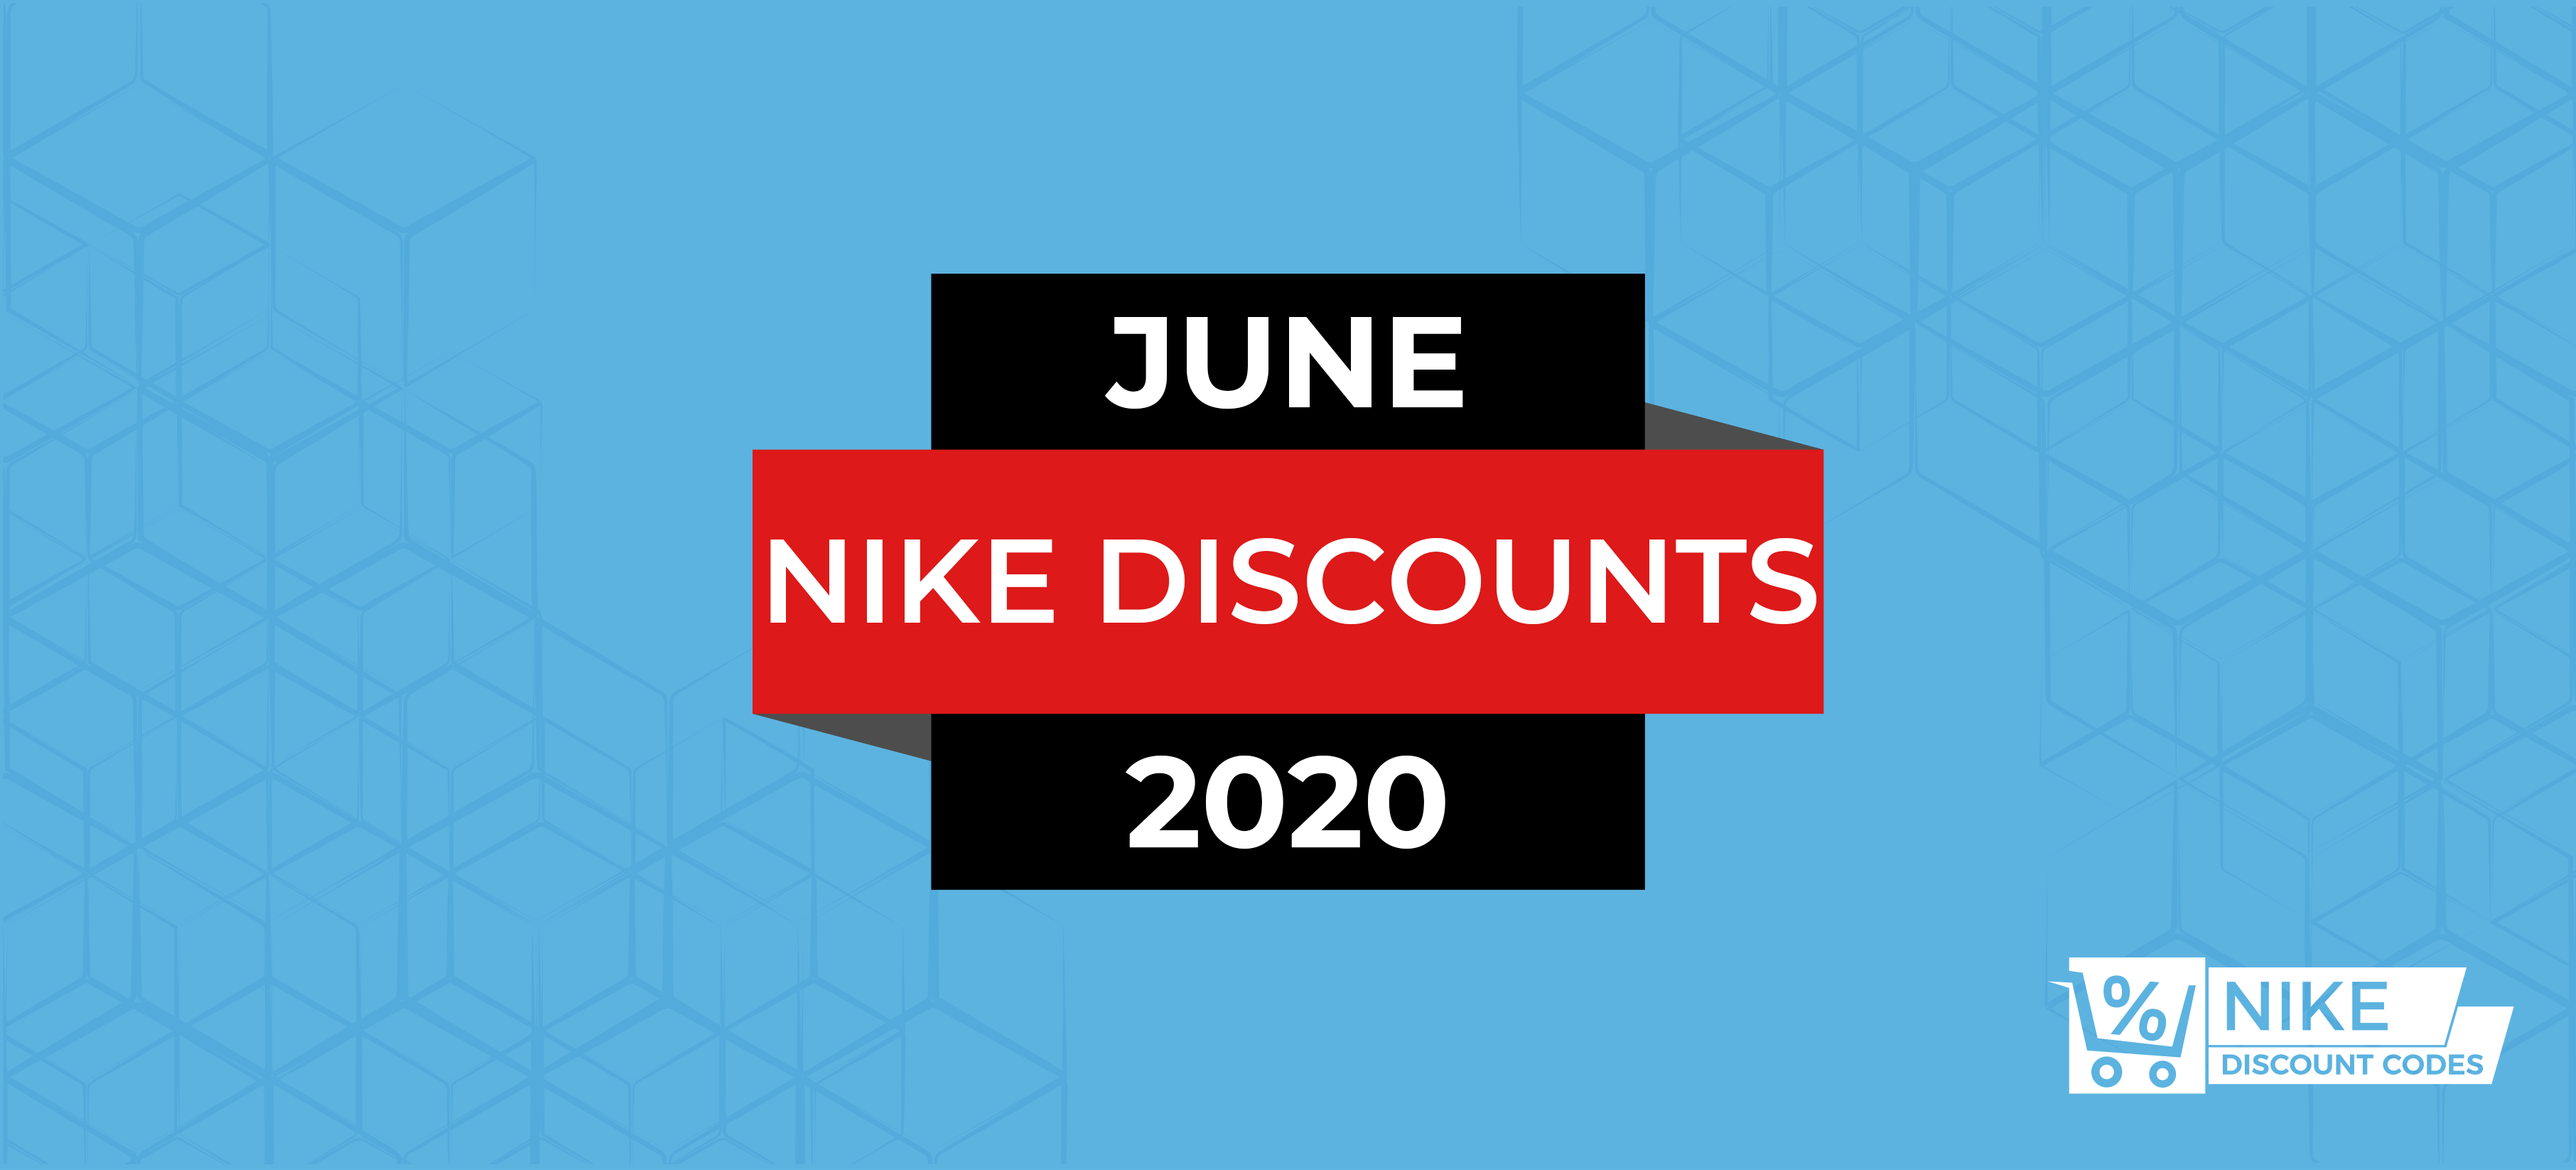 Best Nike discount codes for June 2020.